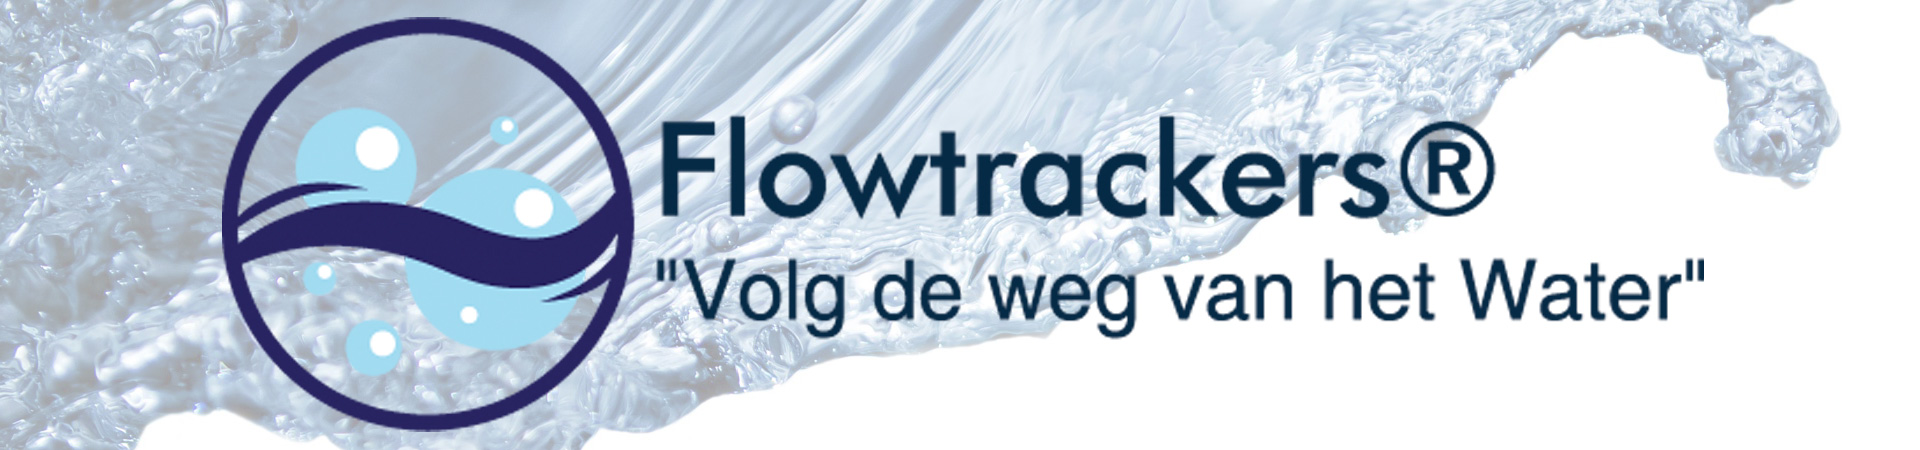 Flowtrackers